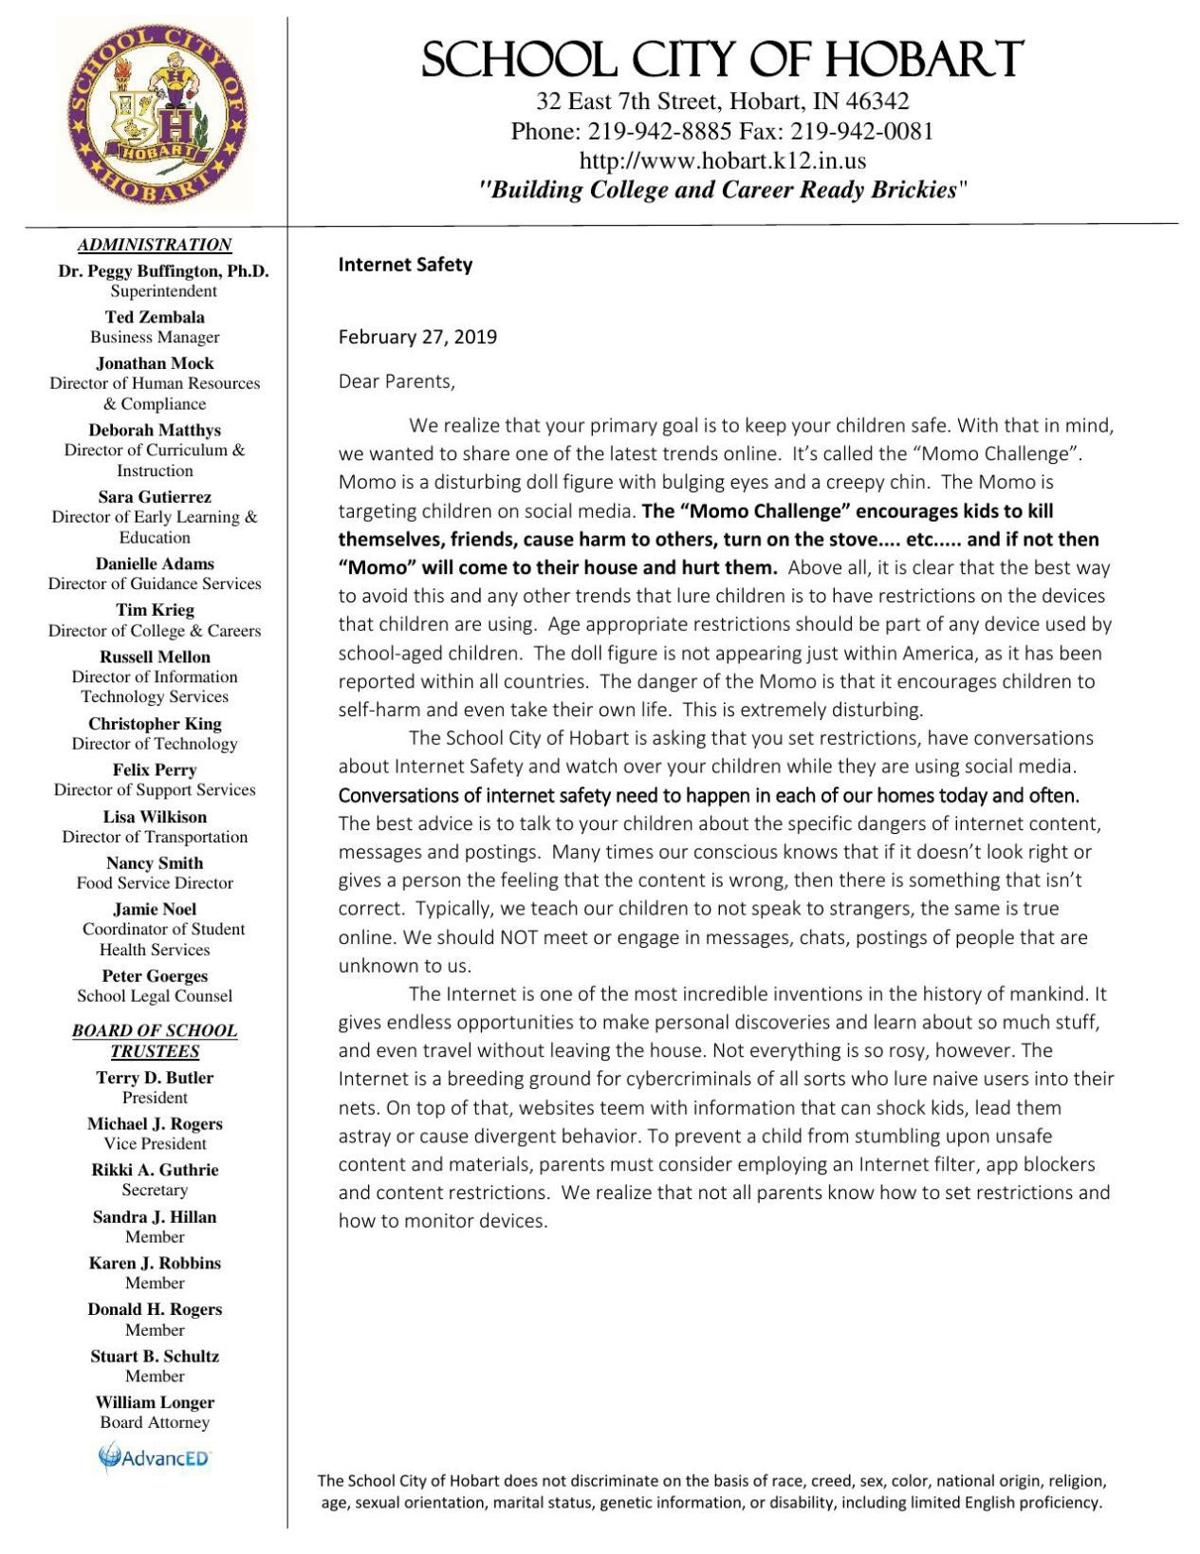 School City of Hobart letter to parents about Momo Challenge